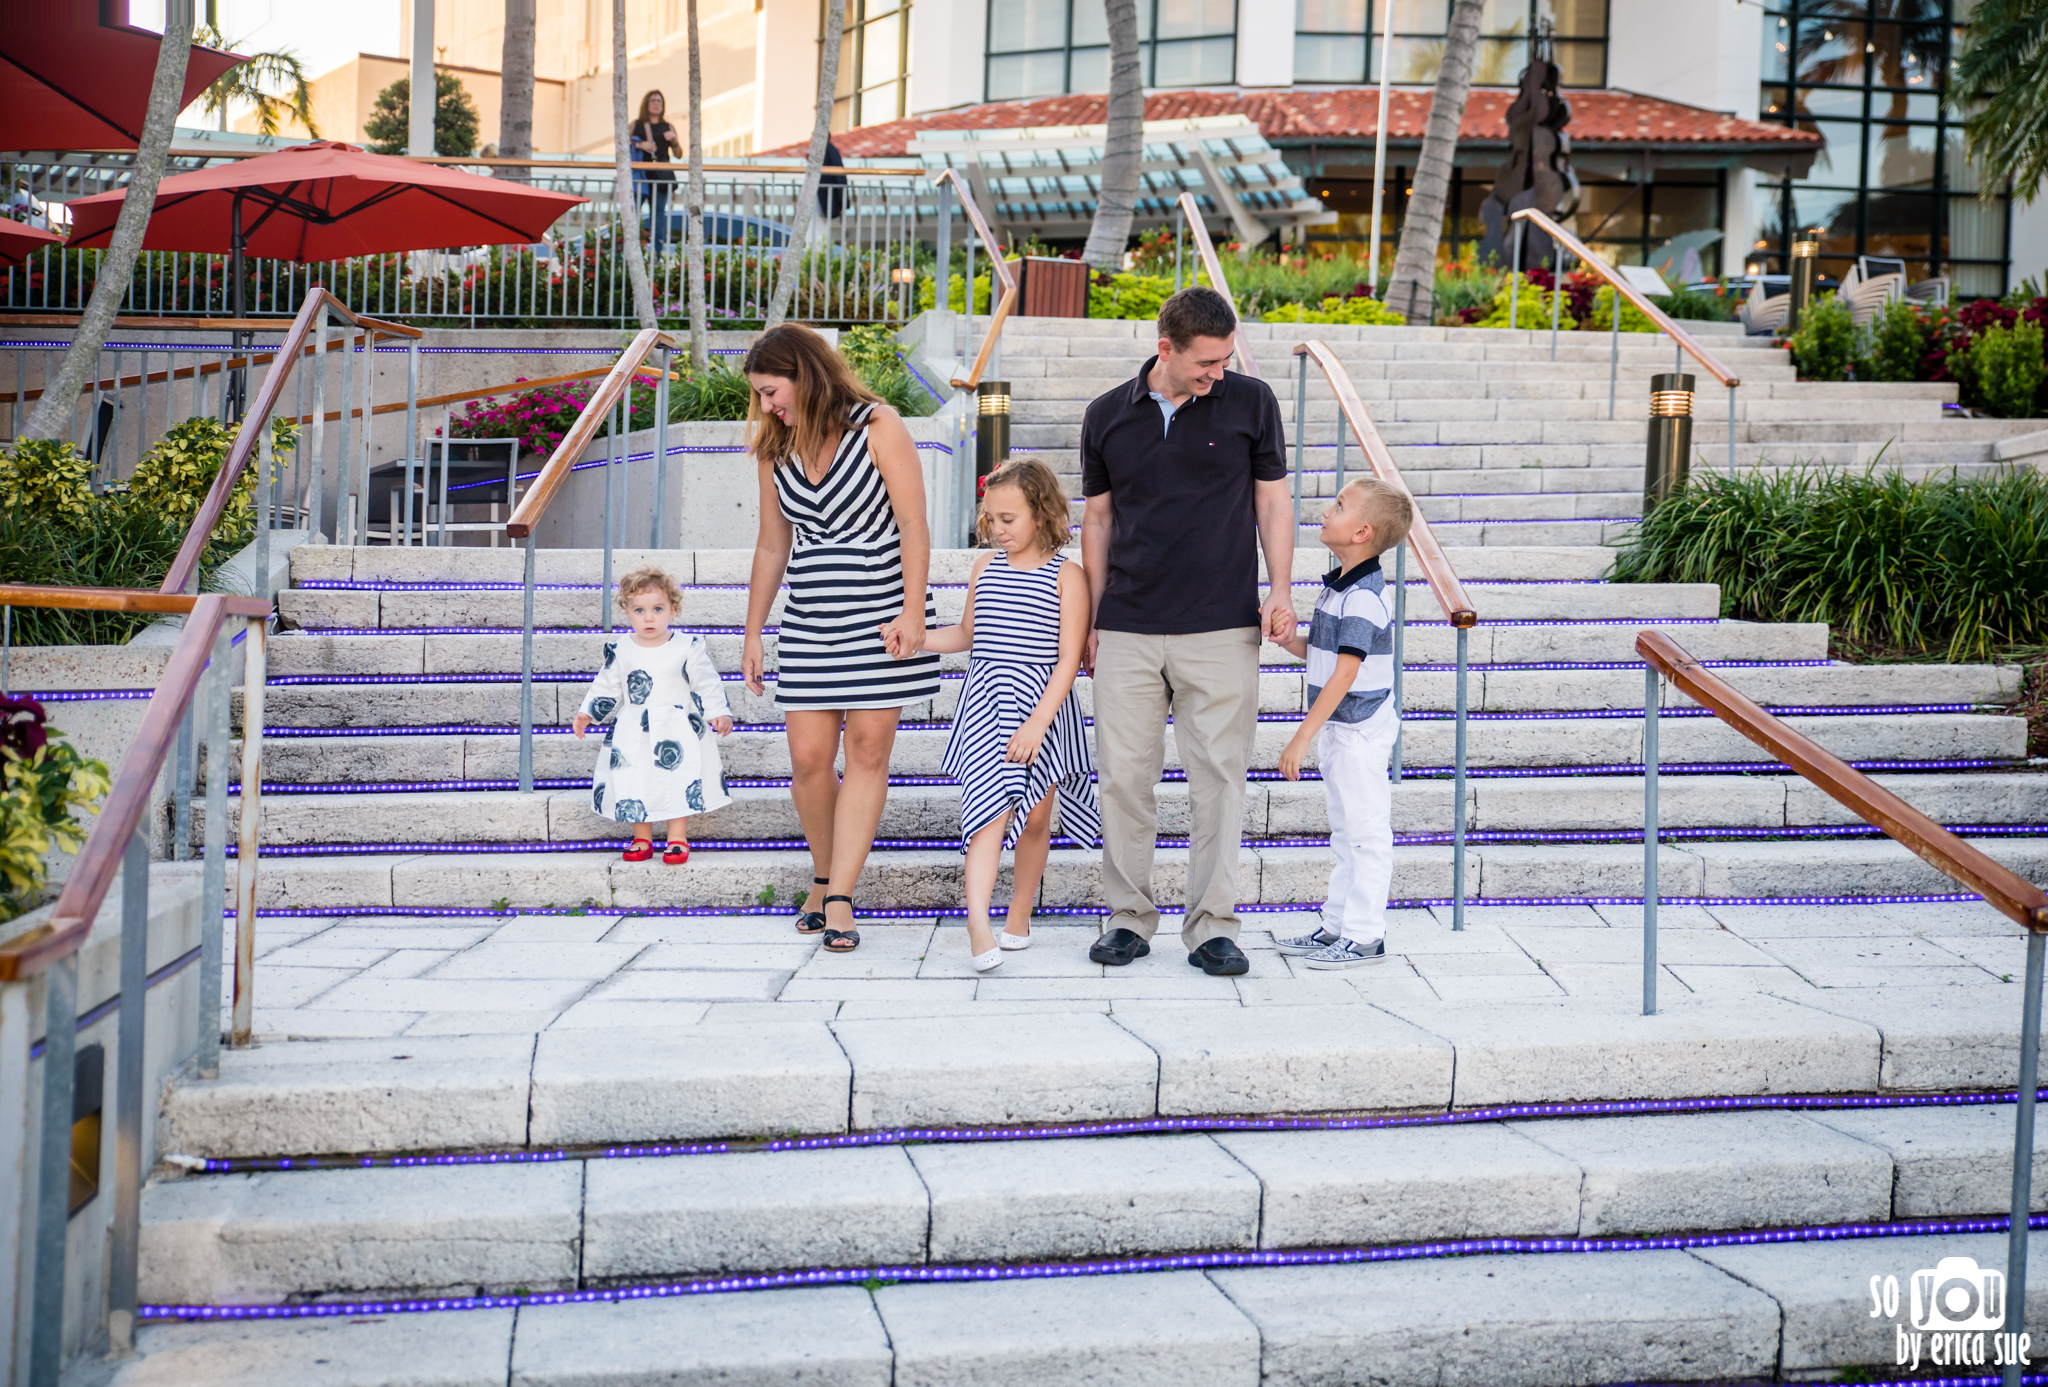 ft-lauderdale-lifestyle-family-photography-so-you-by-erica-sue--5.jpg